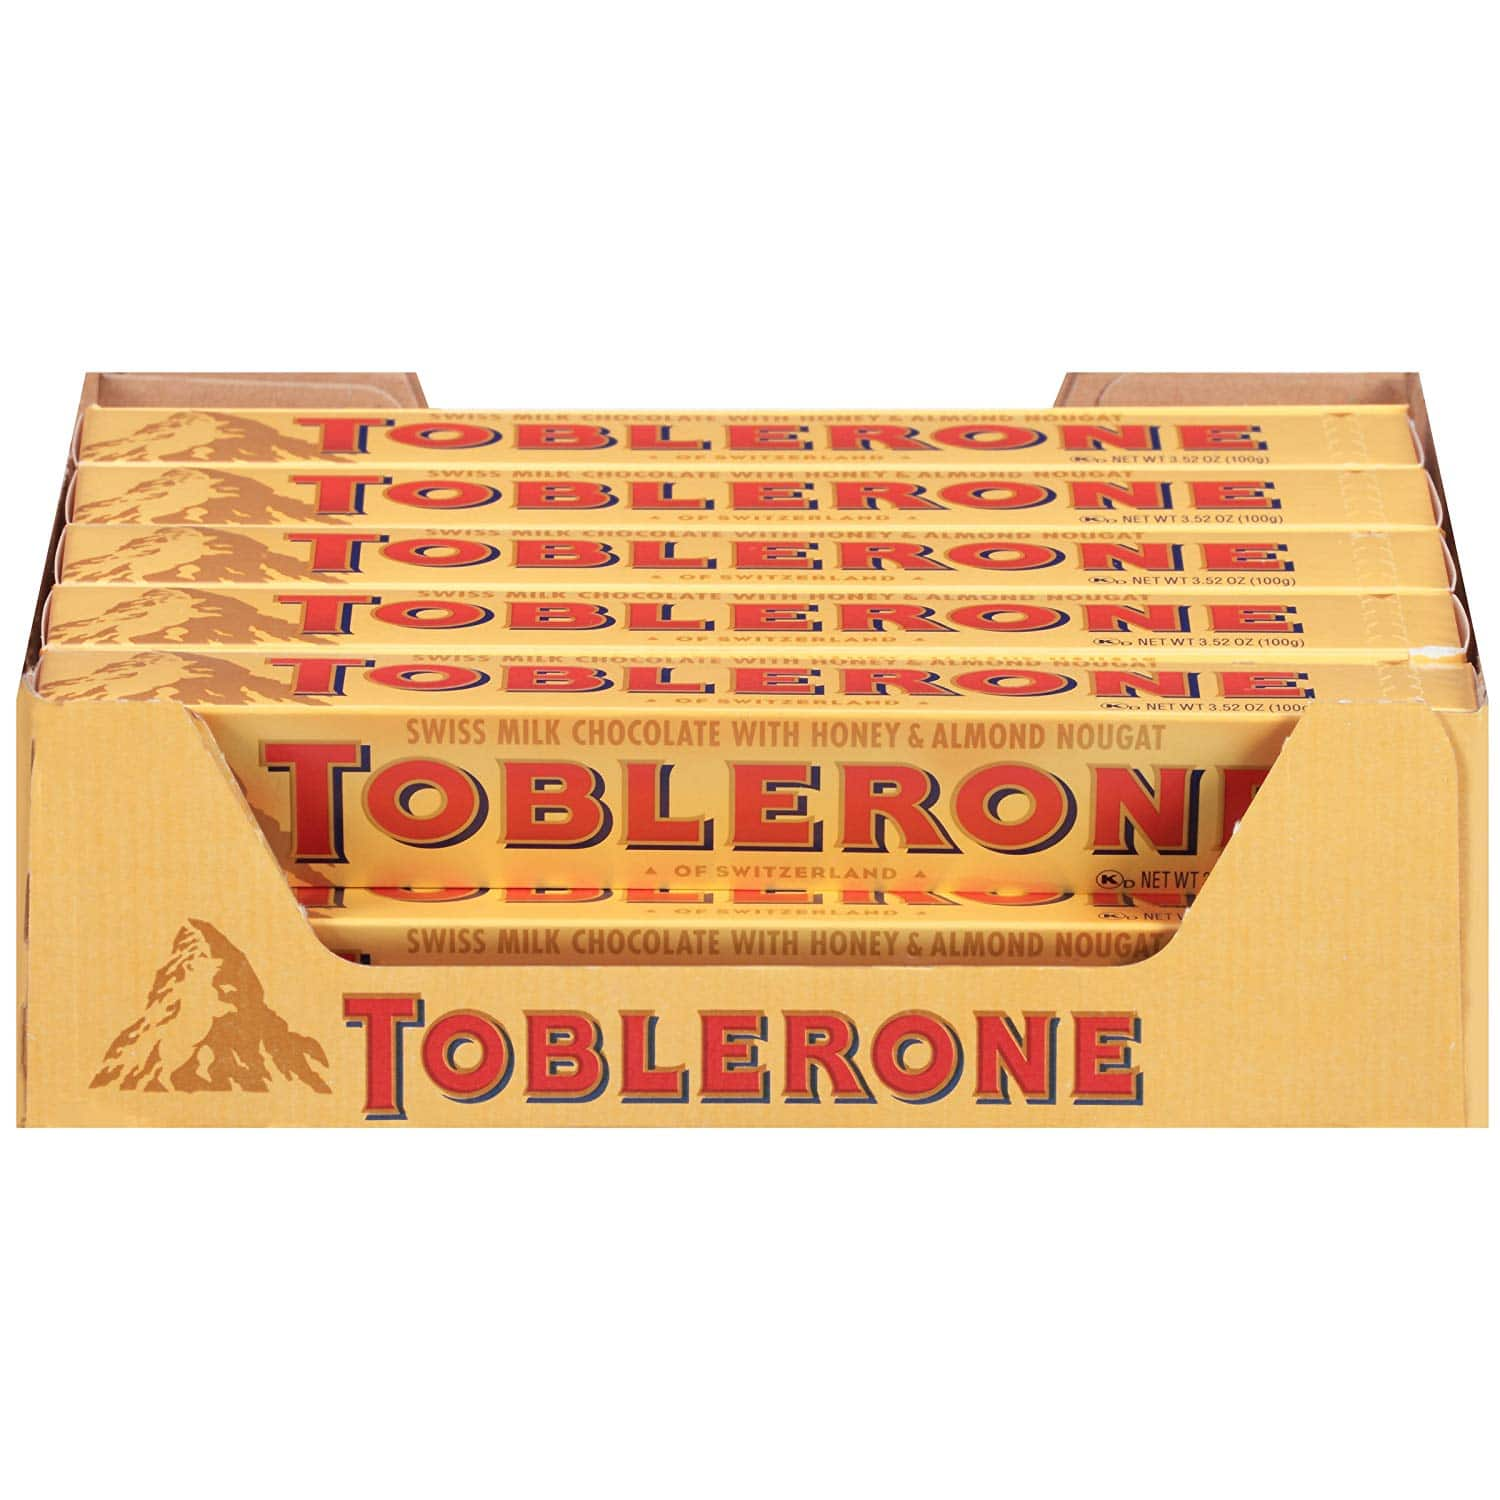 Toblerone Swiss Milk Chocolate with Honey & Almond Nougat, 3.52 Ounce Bars (Pack of 20) $18.2